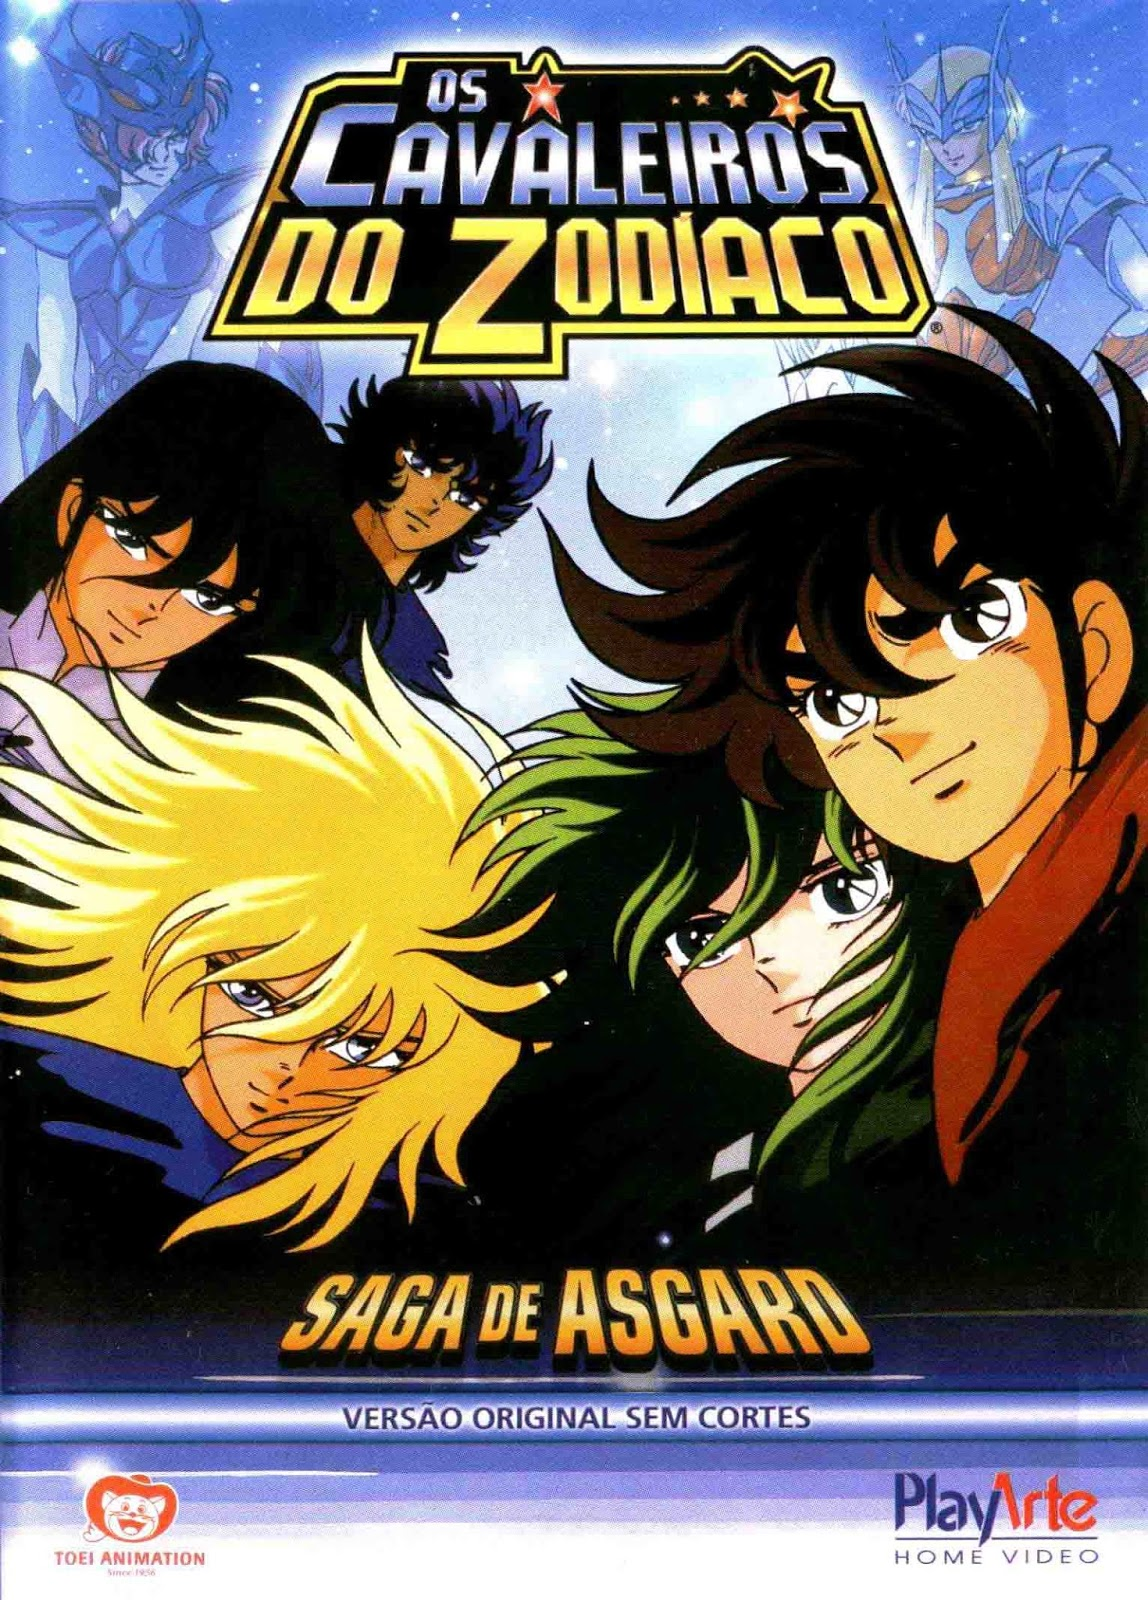 Os Cavaleiros do Zodíaco: Saga de Asgard - Parte 1 Torrent - BluRay 1080p Dual Áudio